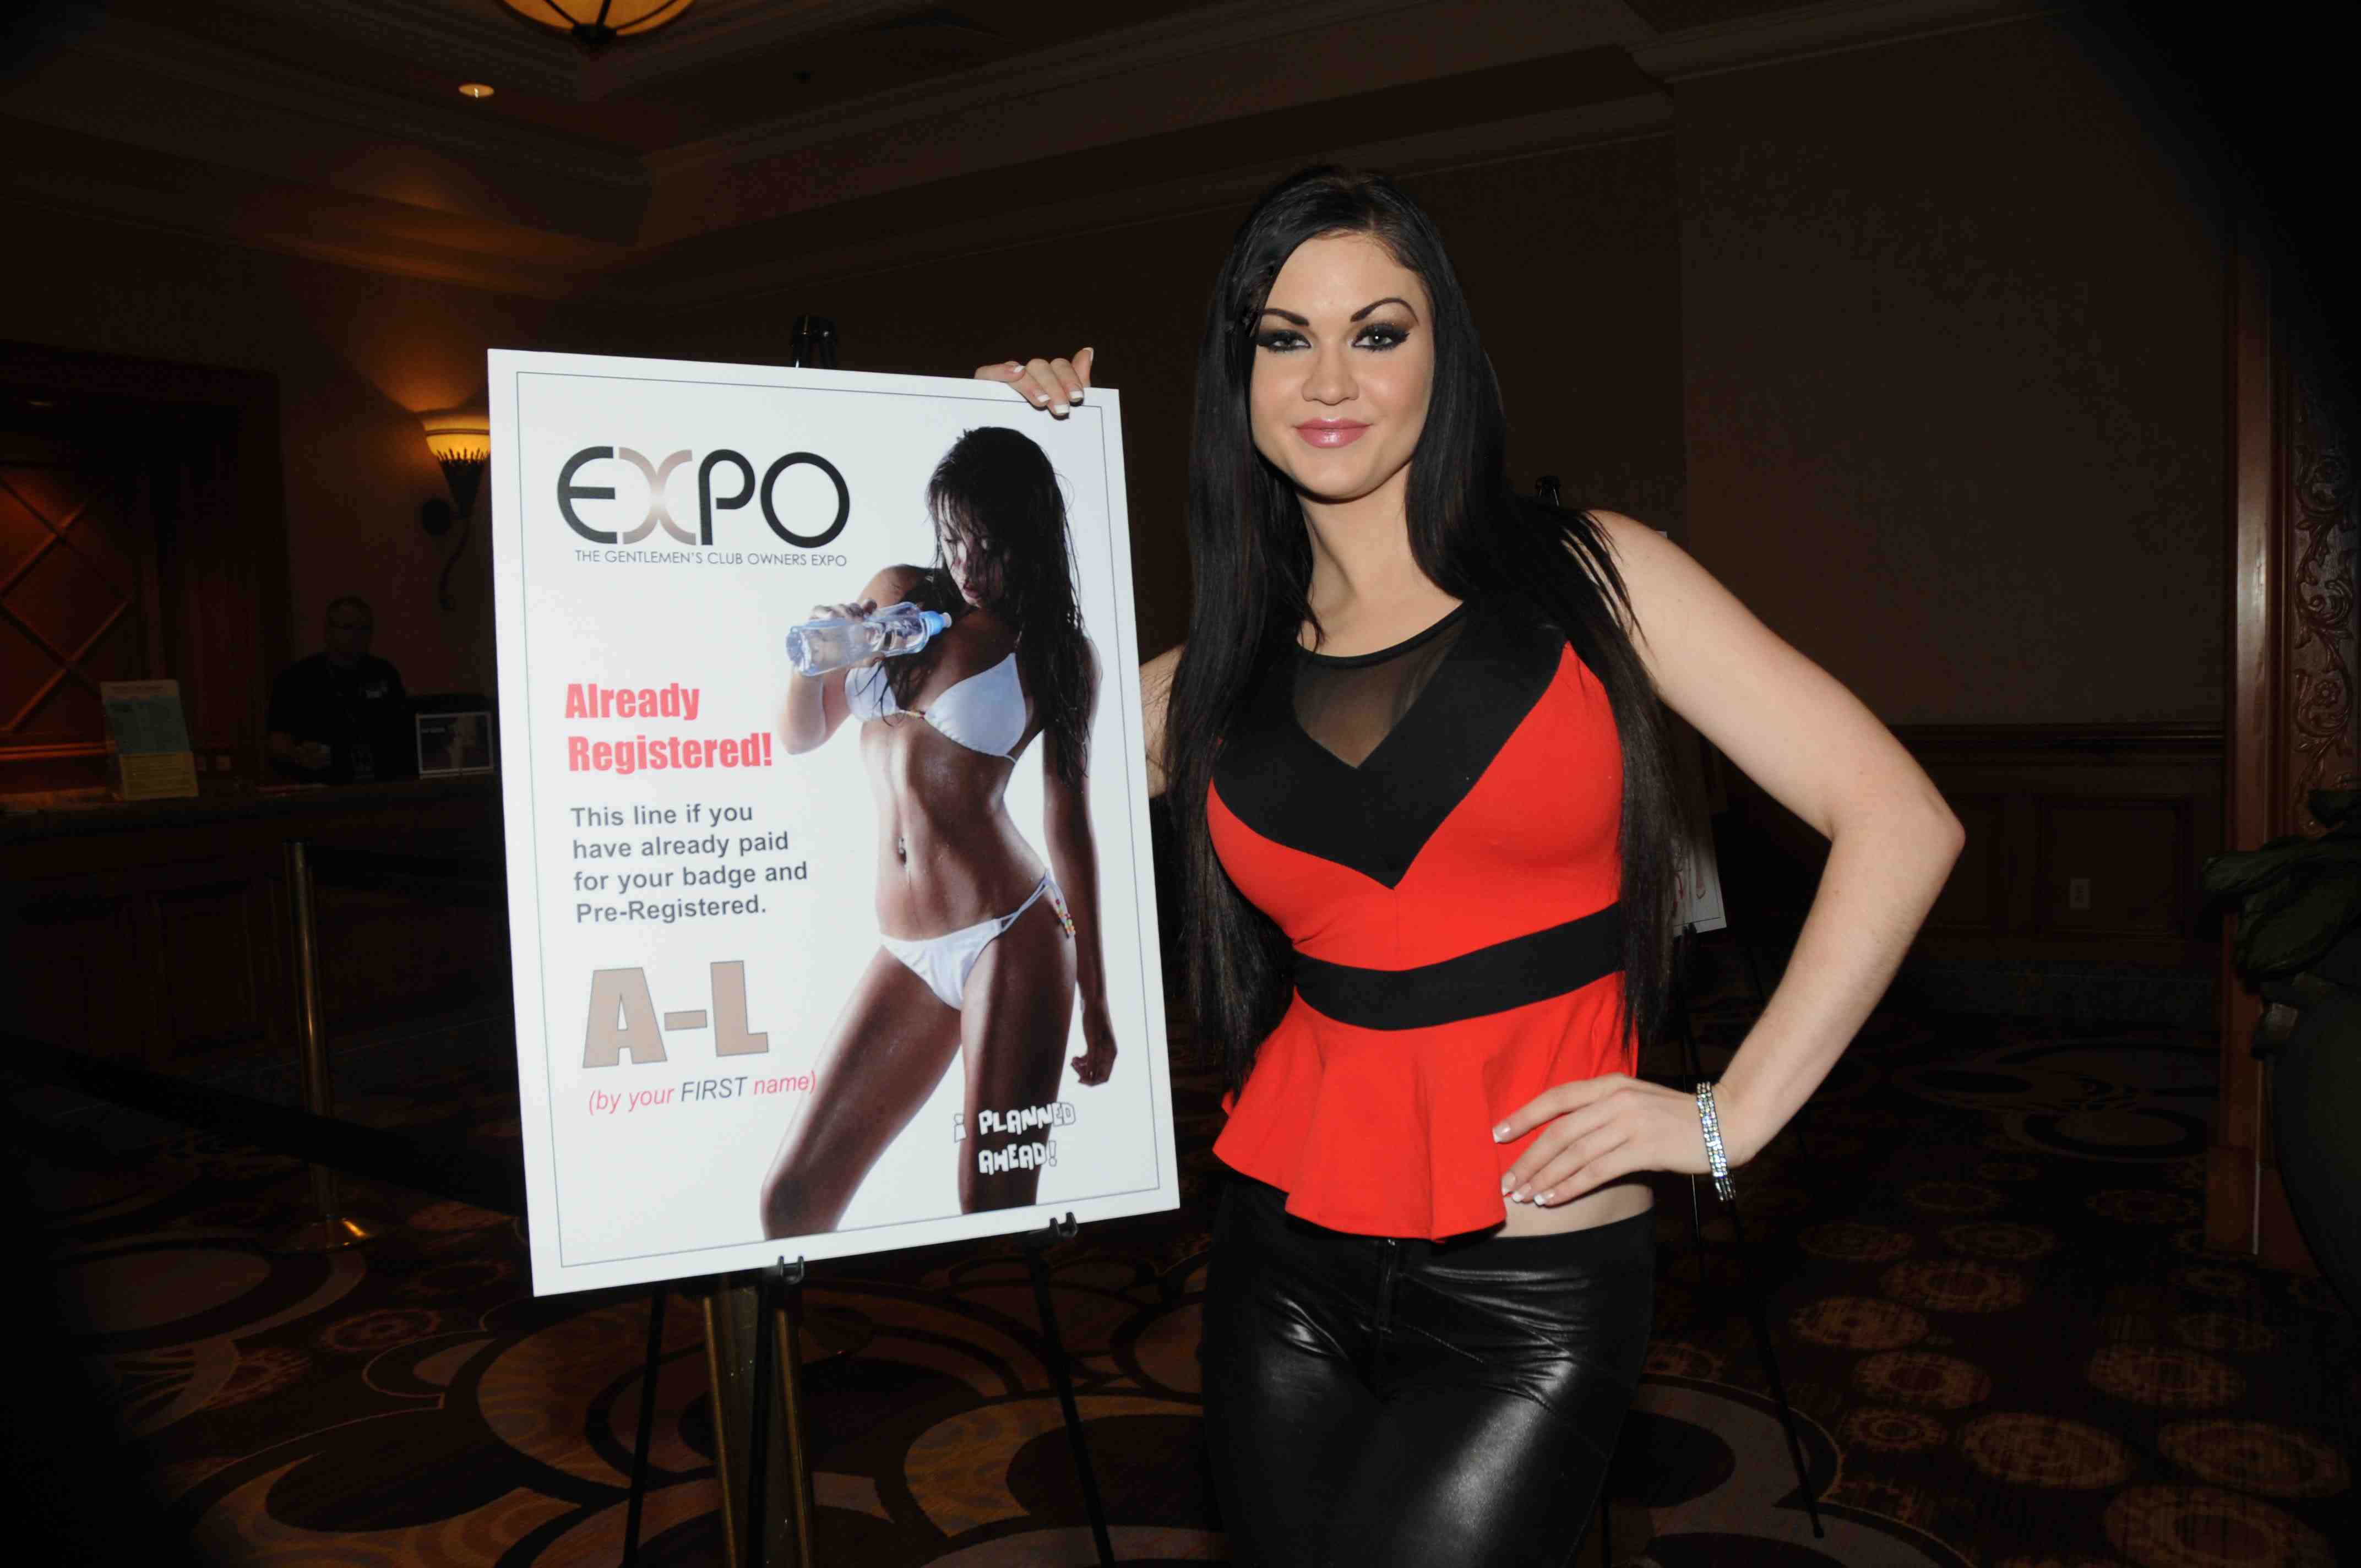 Kendall Karson At 2013 Gentlemens Club Owners Expo Kendall Karson At The 2013 Gentlemens Club Owners Expo At